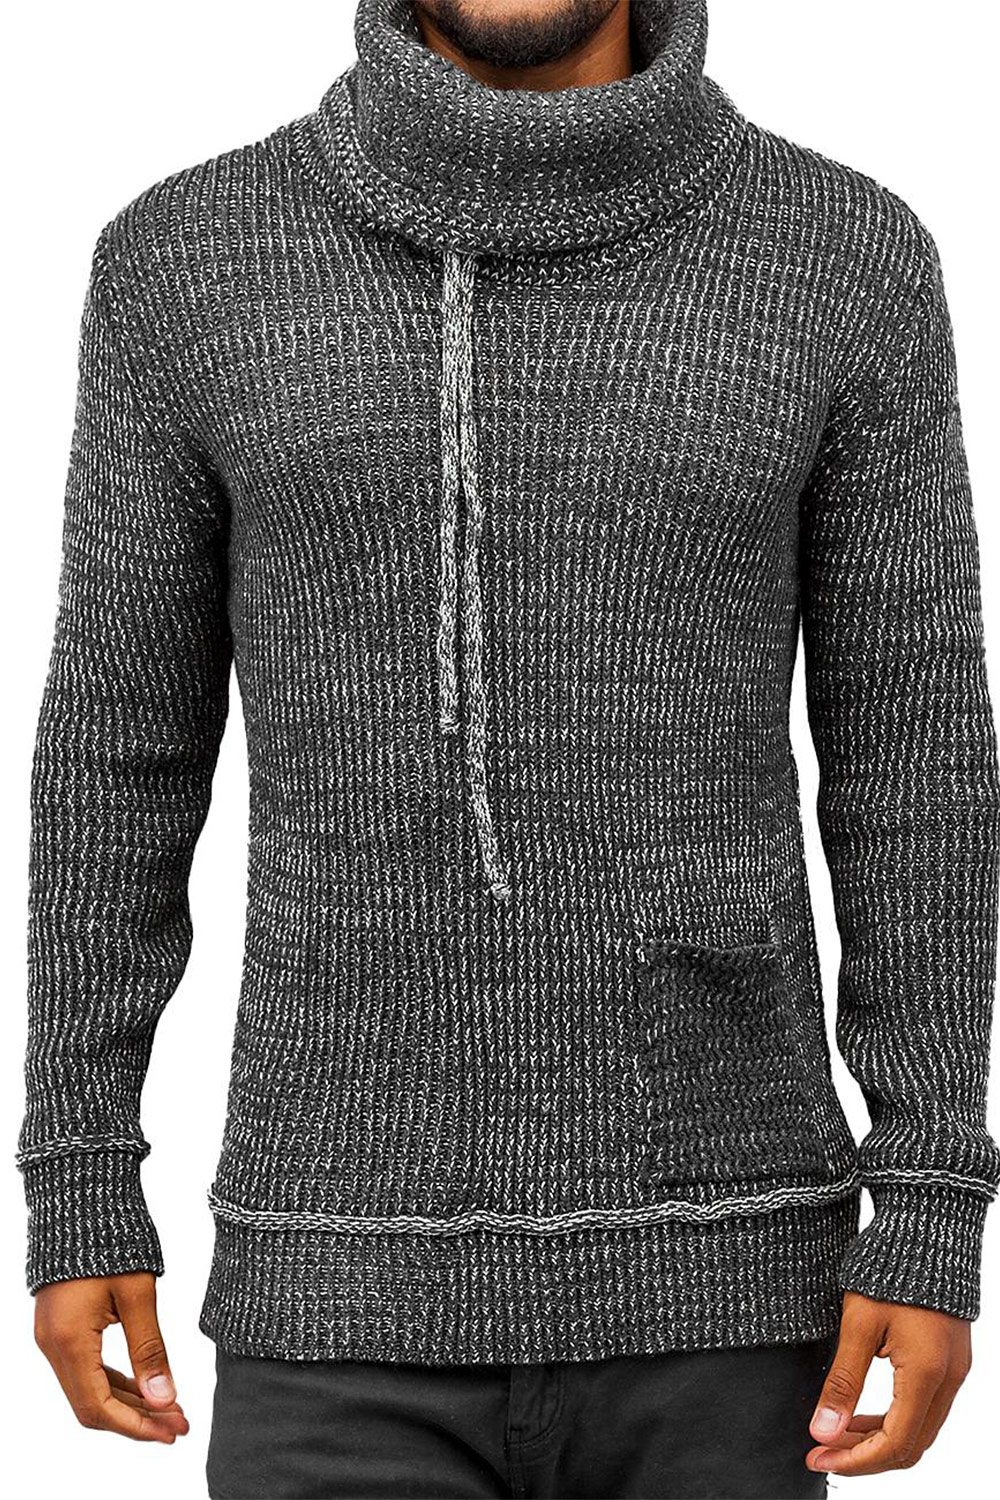 JUST RHYSE Knit Sweater Anthracite Bone auf oboy.de